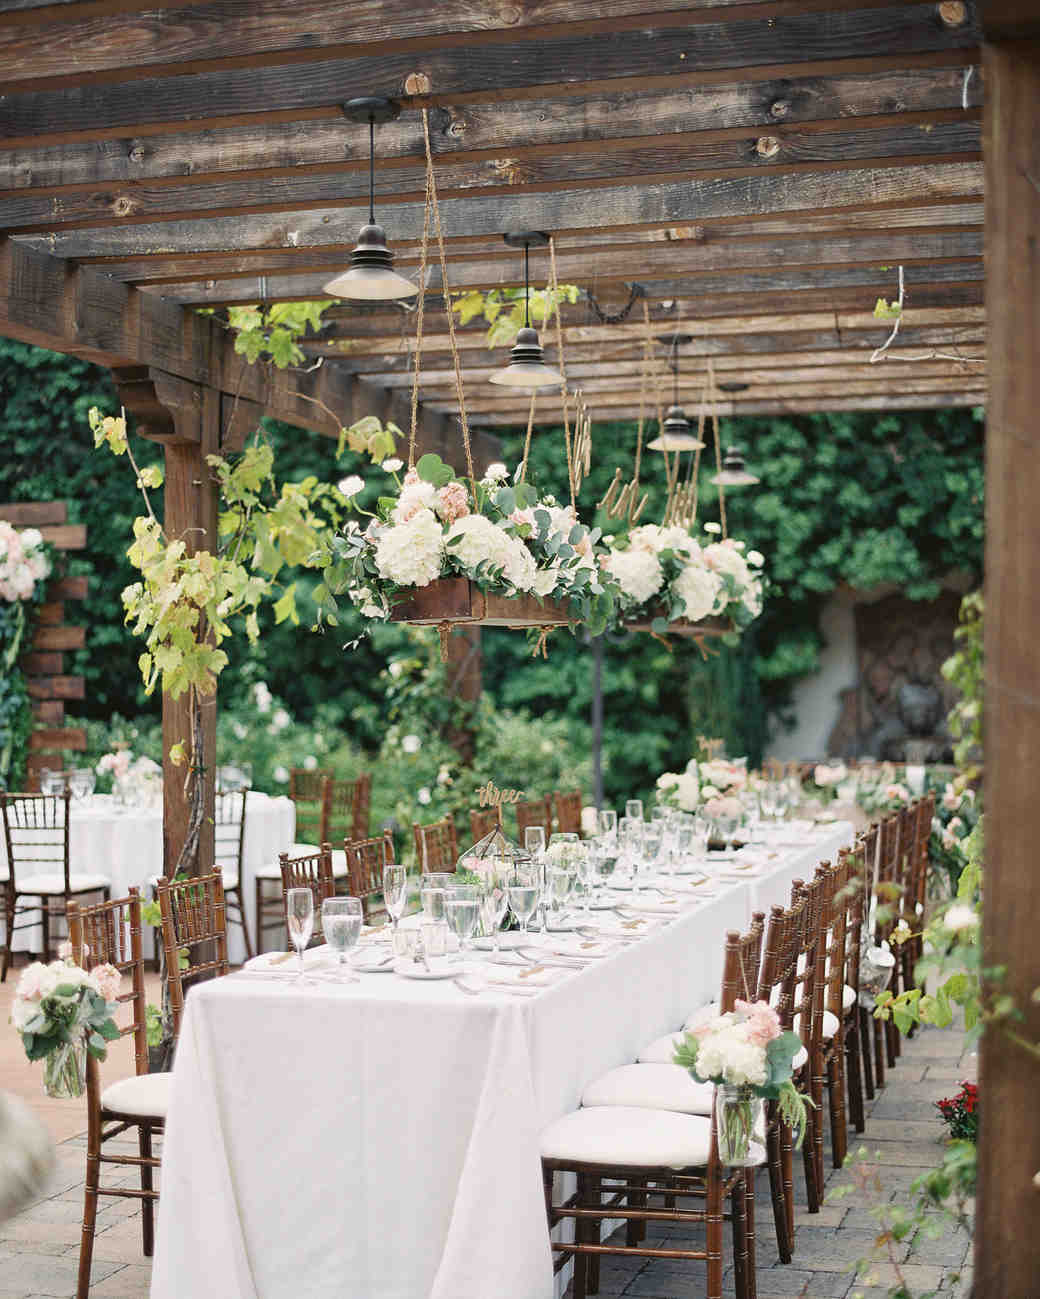 7 Barn Wedding Decoration Ideas For A Spring Wedding: 28 Ideas For Sitting Pretty At Your Head Table